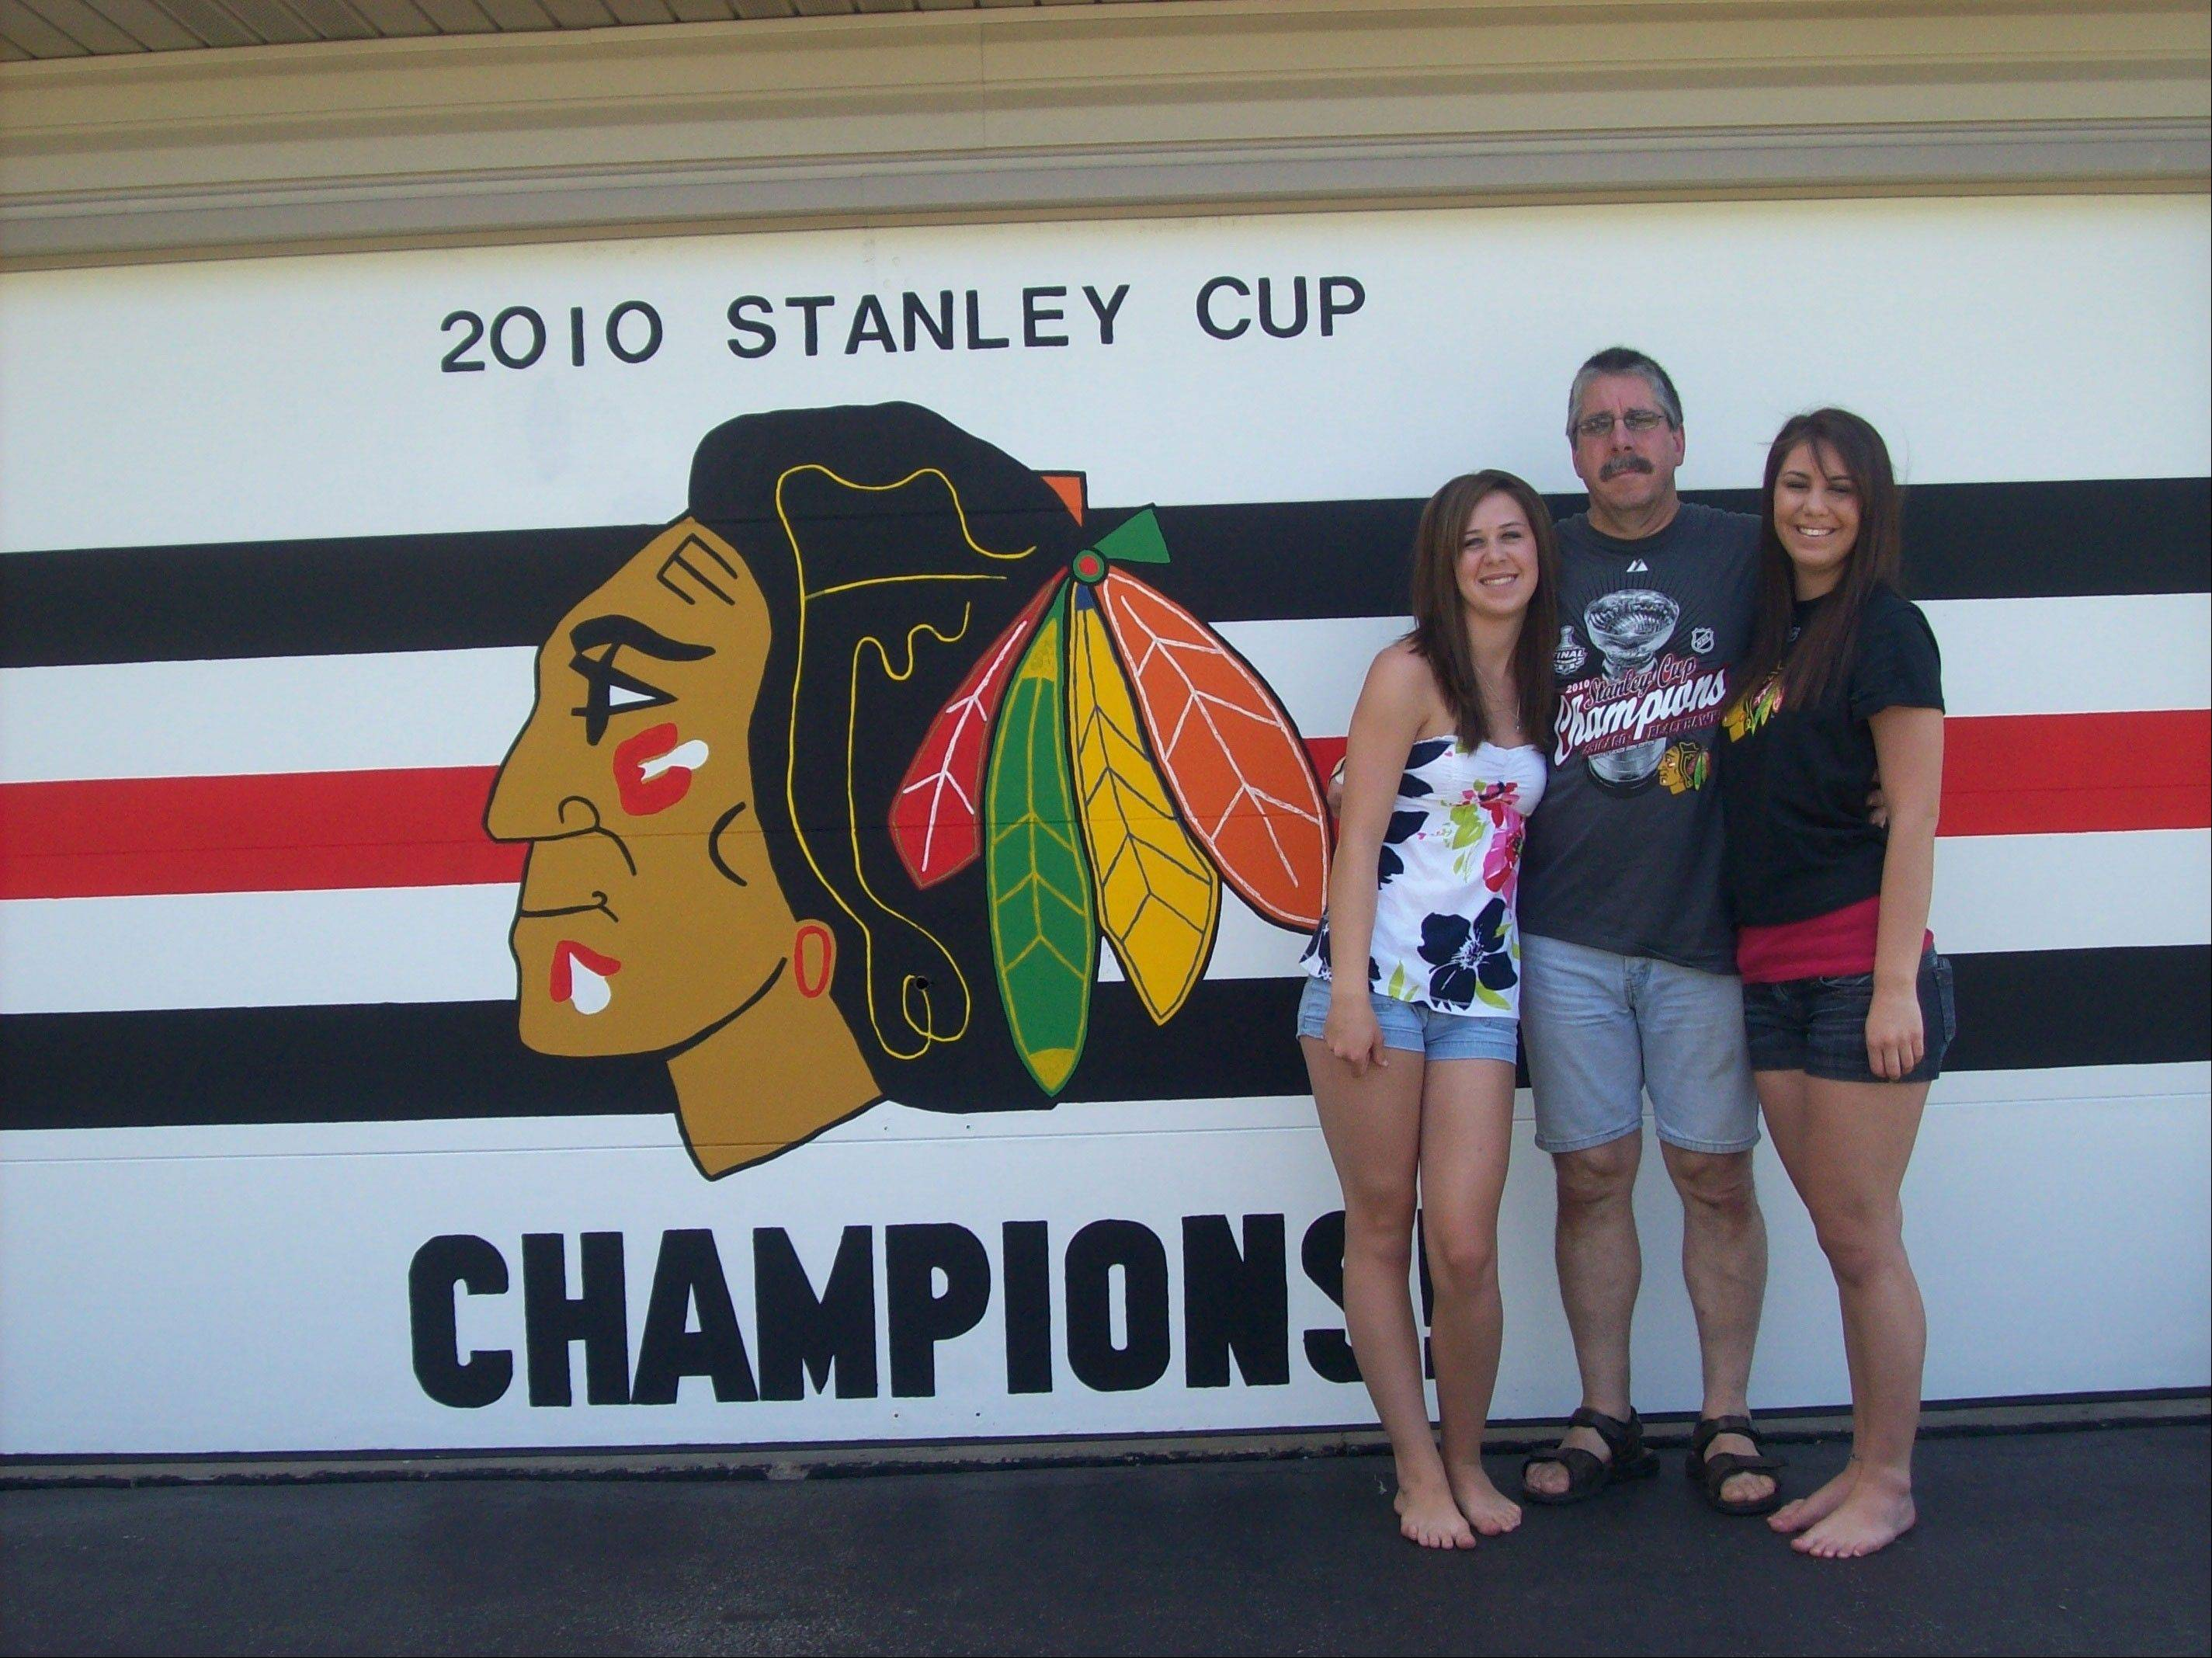 After the Hawks won the Stanley Cup in 2010, the Mahers of Roselle wanted to do something special so Rick and daughters Allison and Christine painted the garage door. They are really looking forward to adding the year 2013, says Mary Maher,